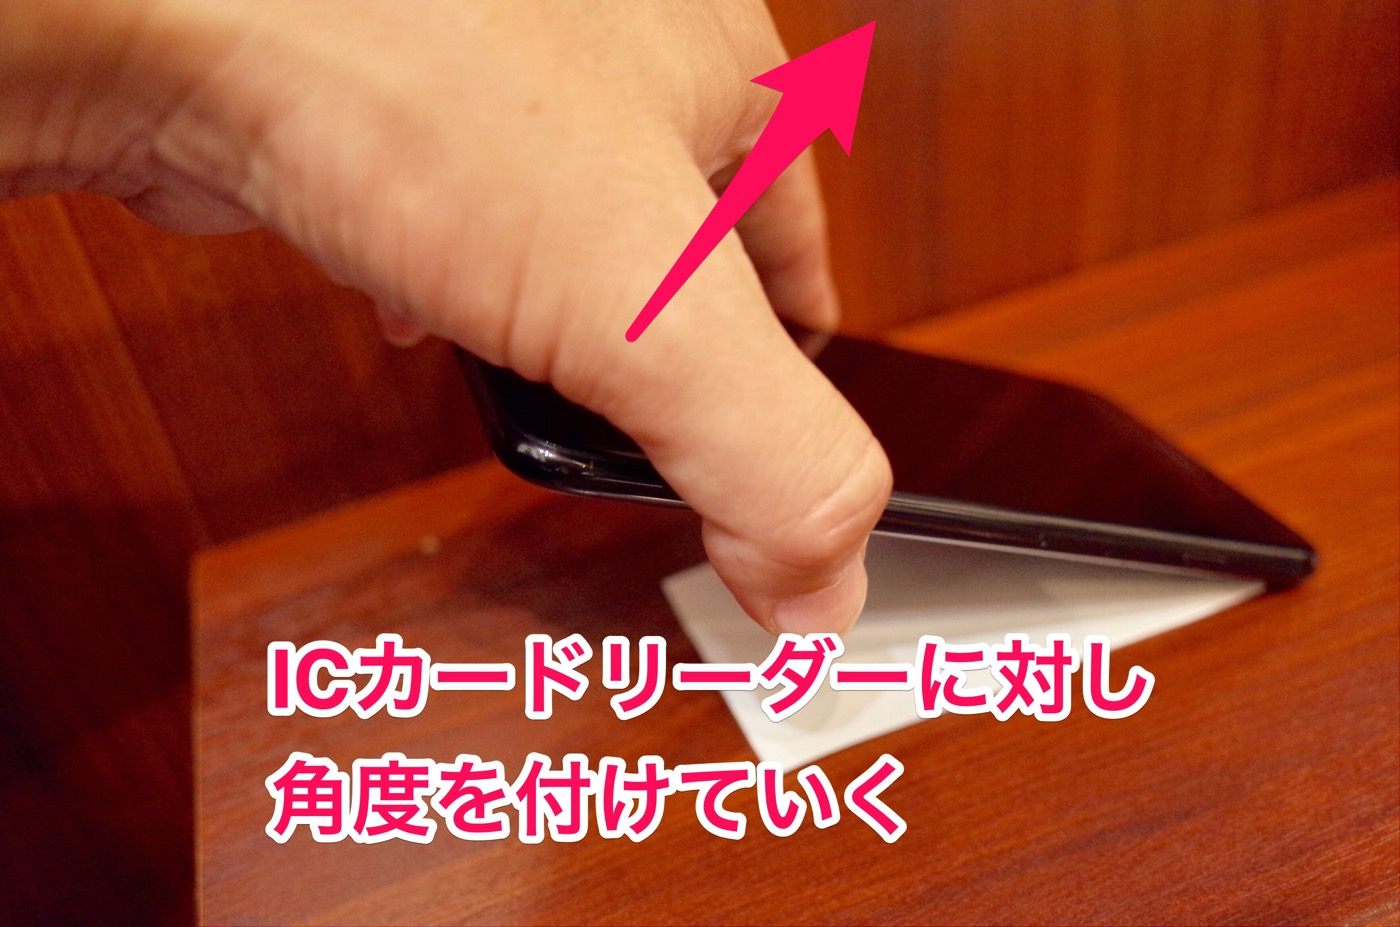 iphone-nfc-reader-tips005